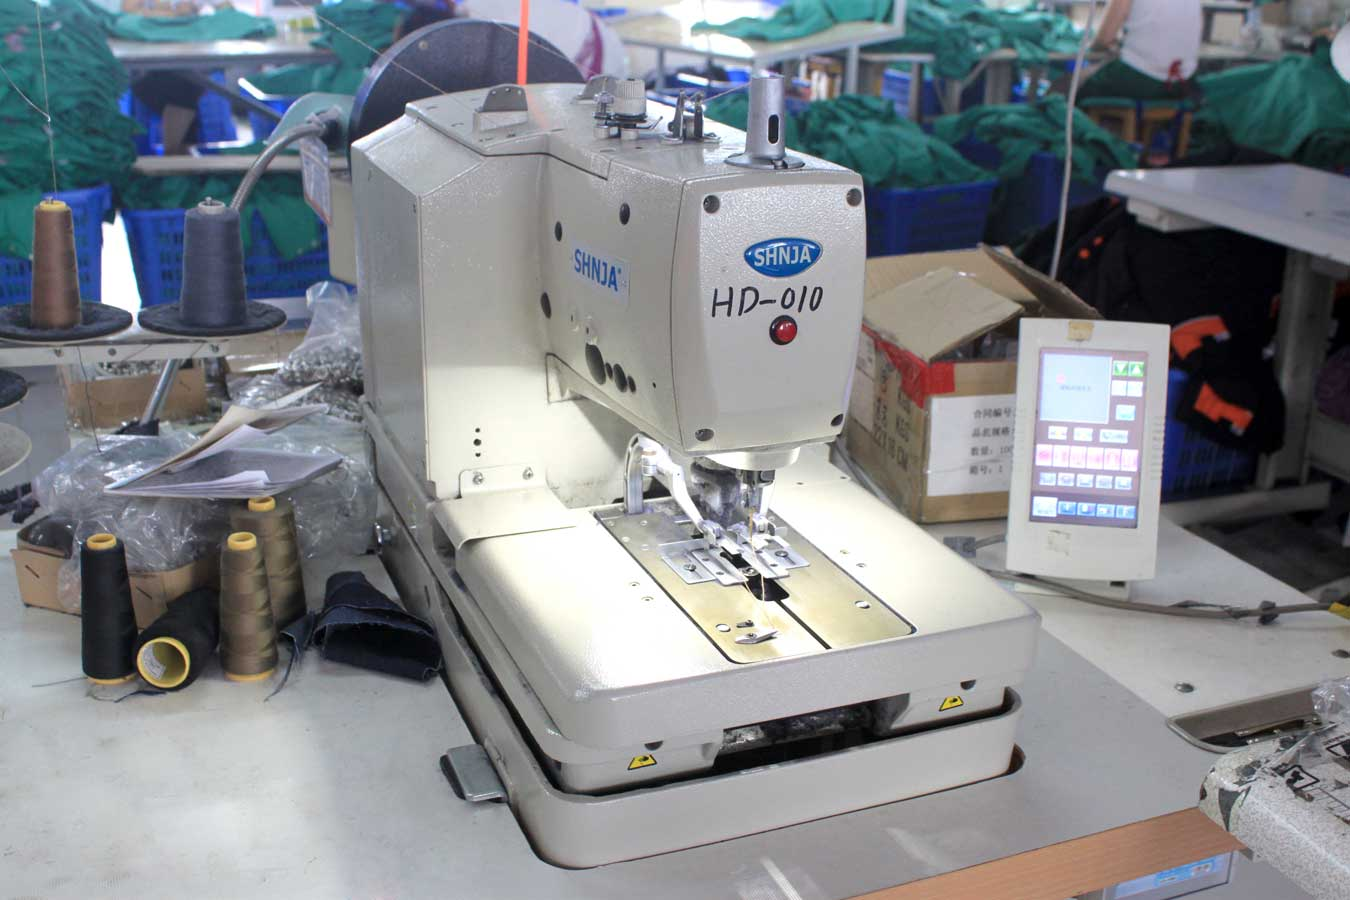 eyelet-button-hole-sewing-machine